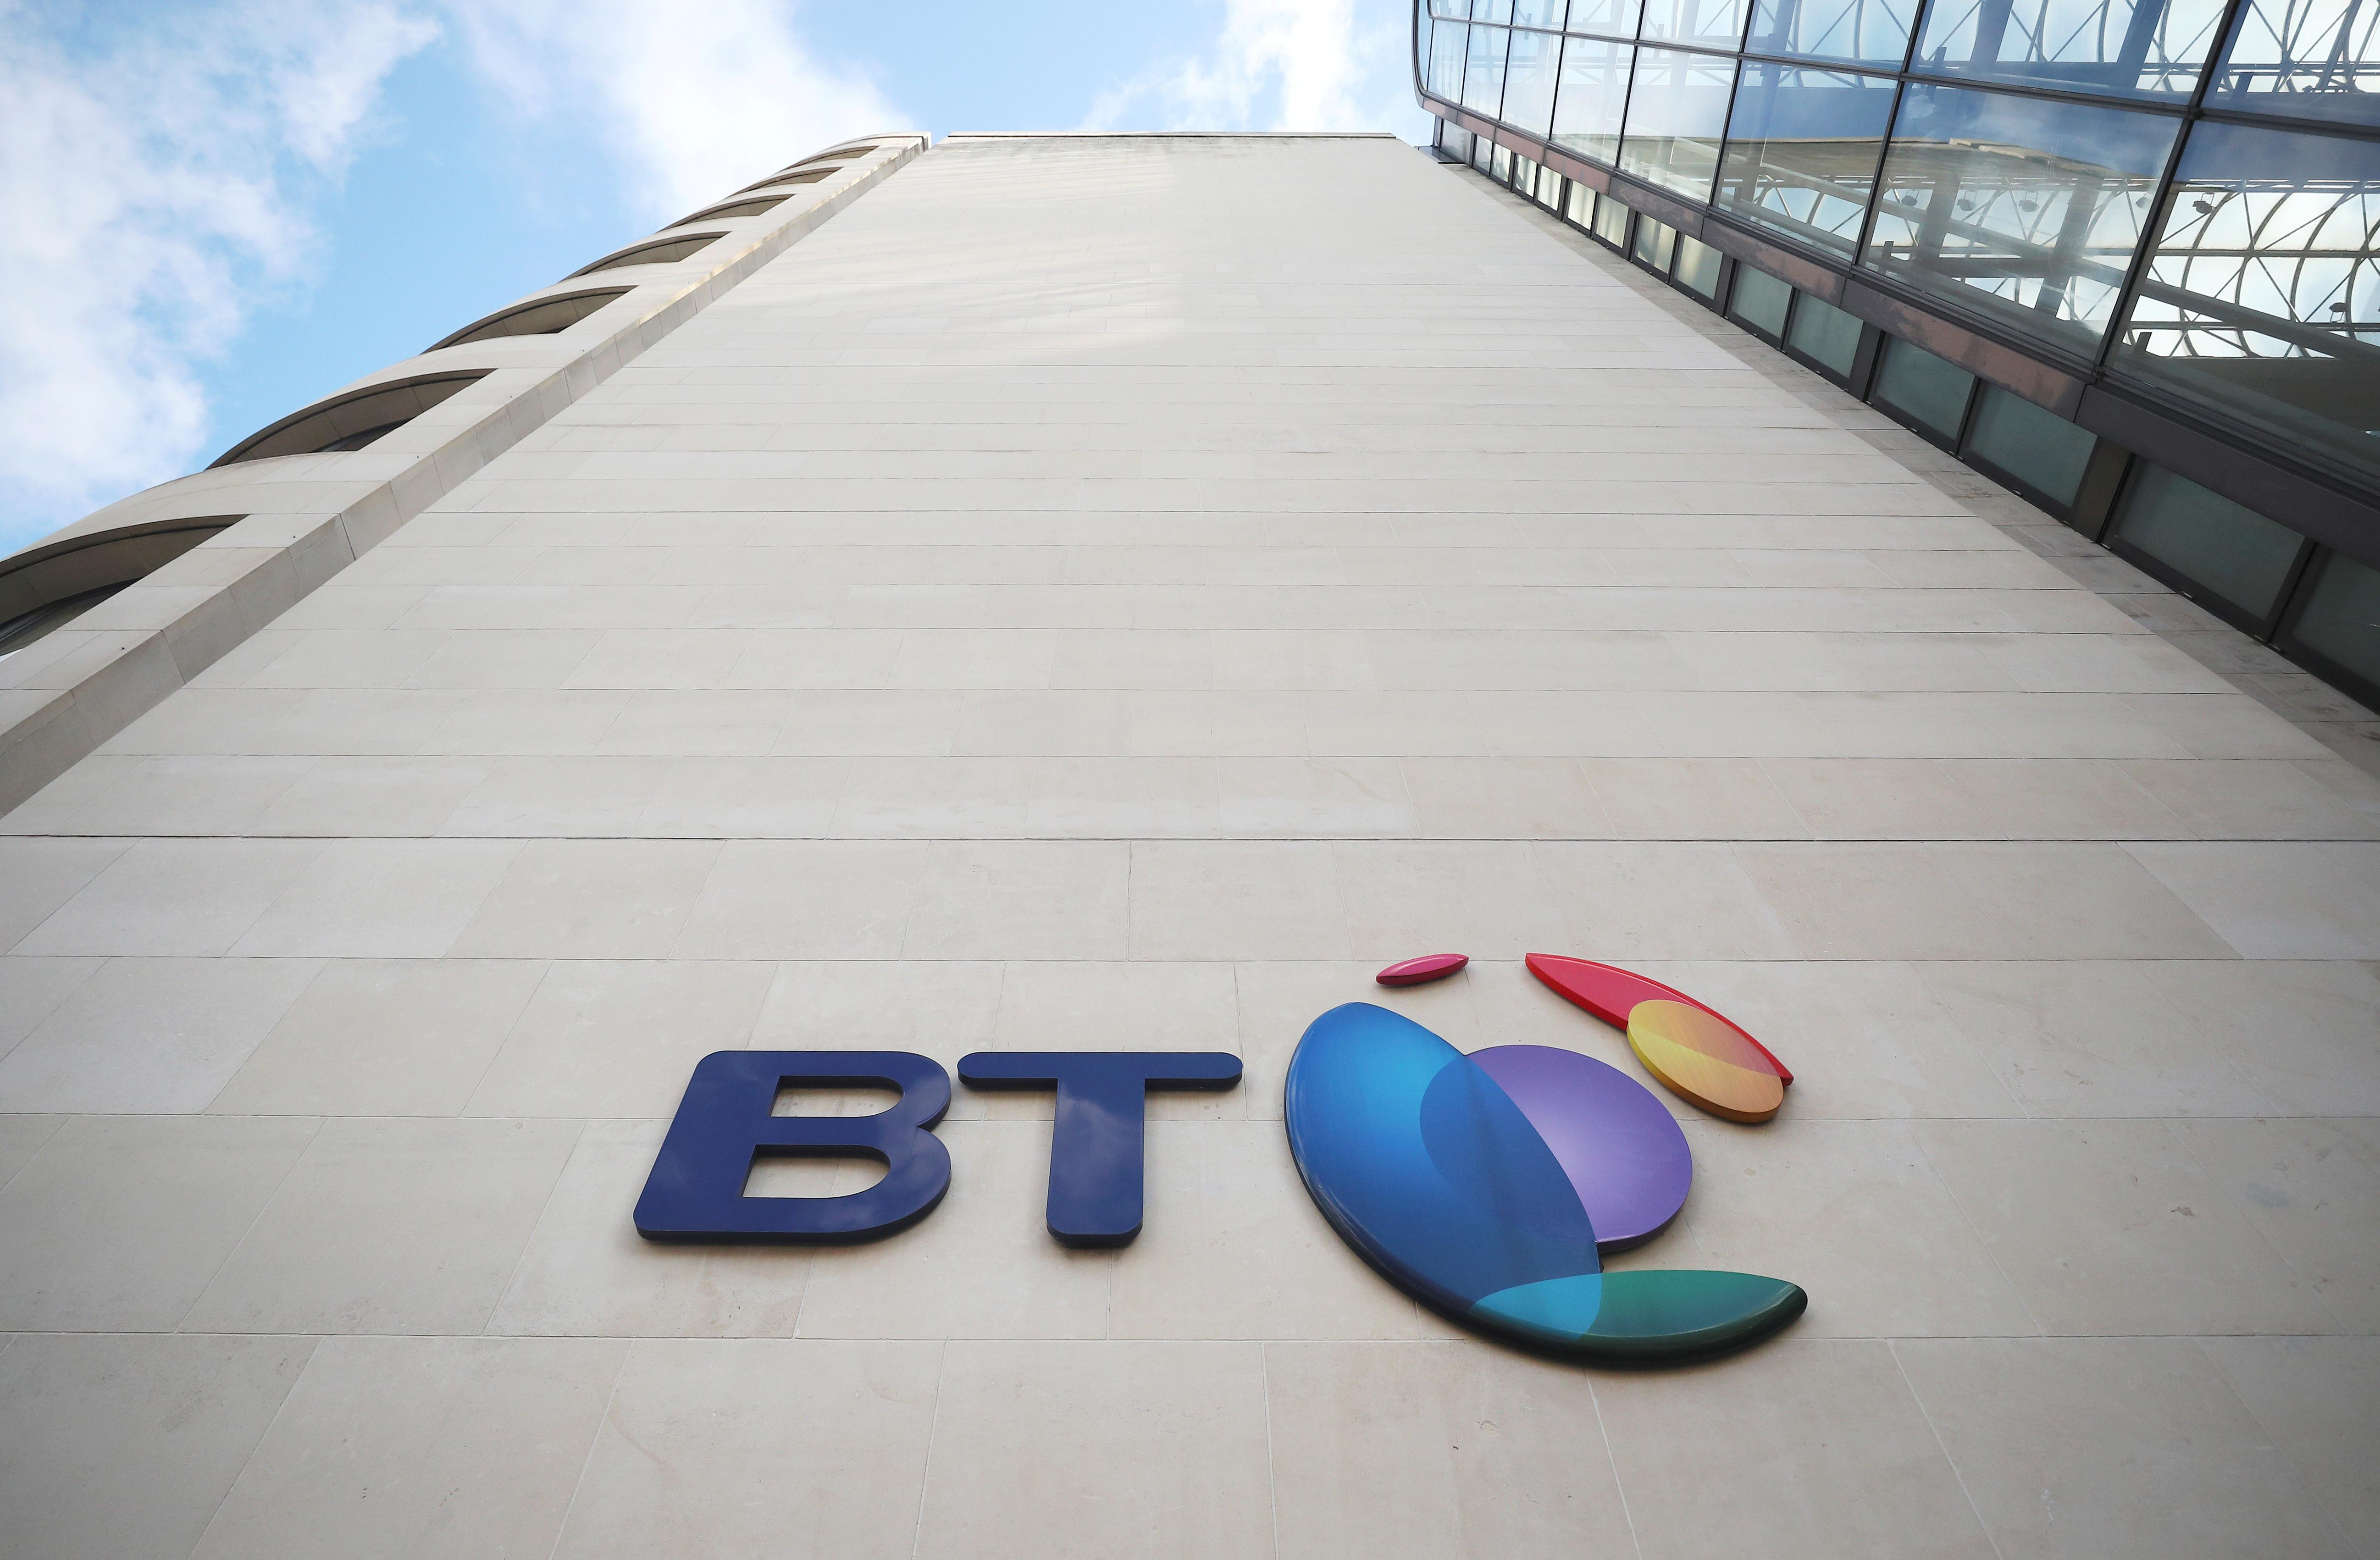 France's Orange to sell remaining stake in BT